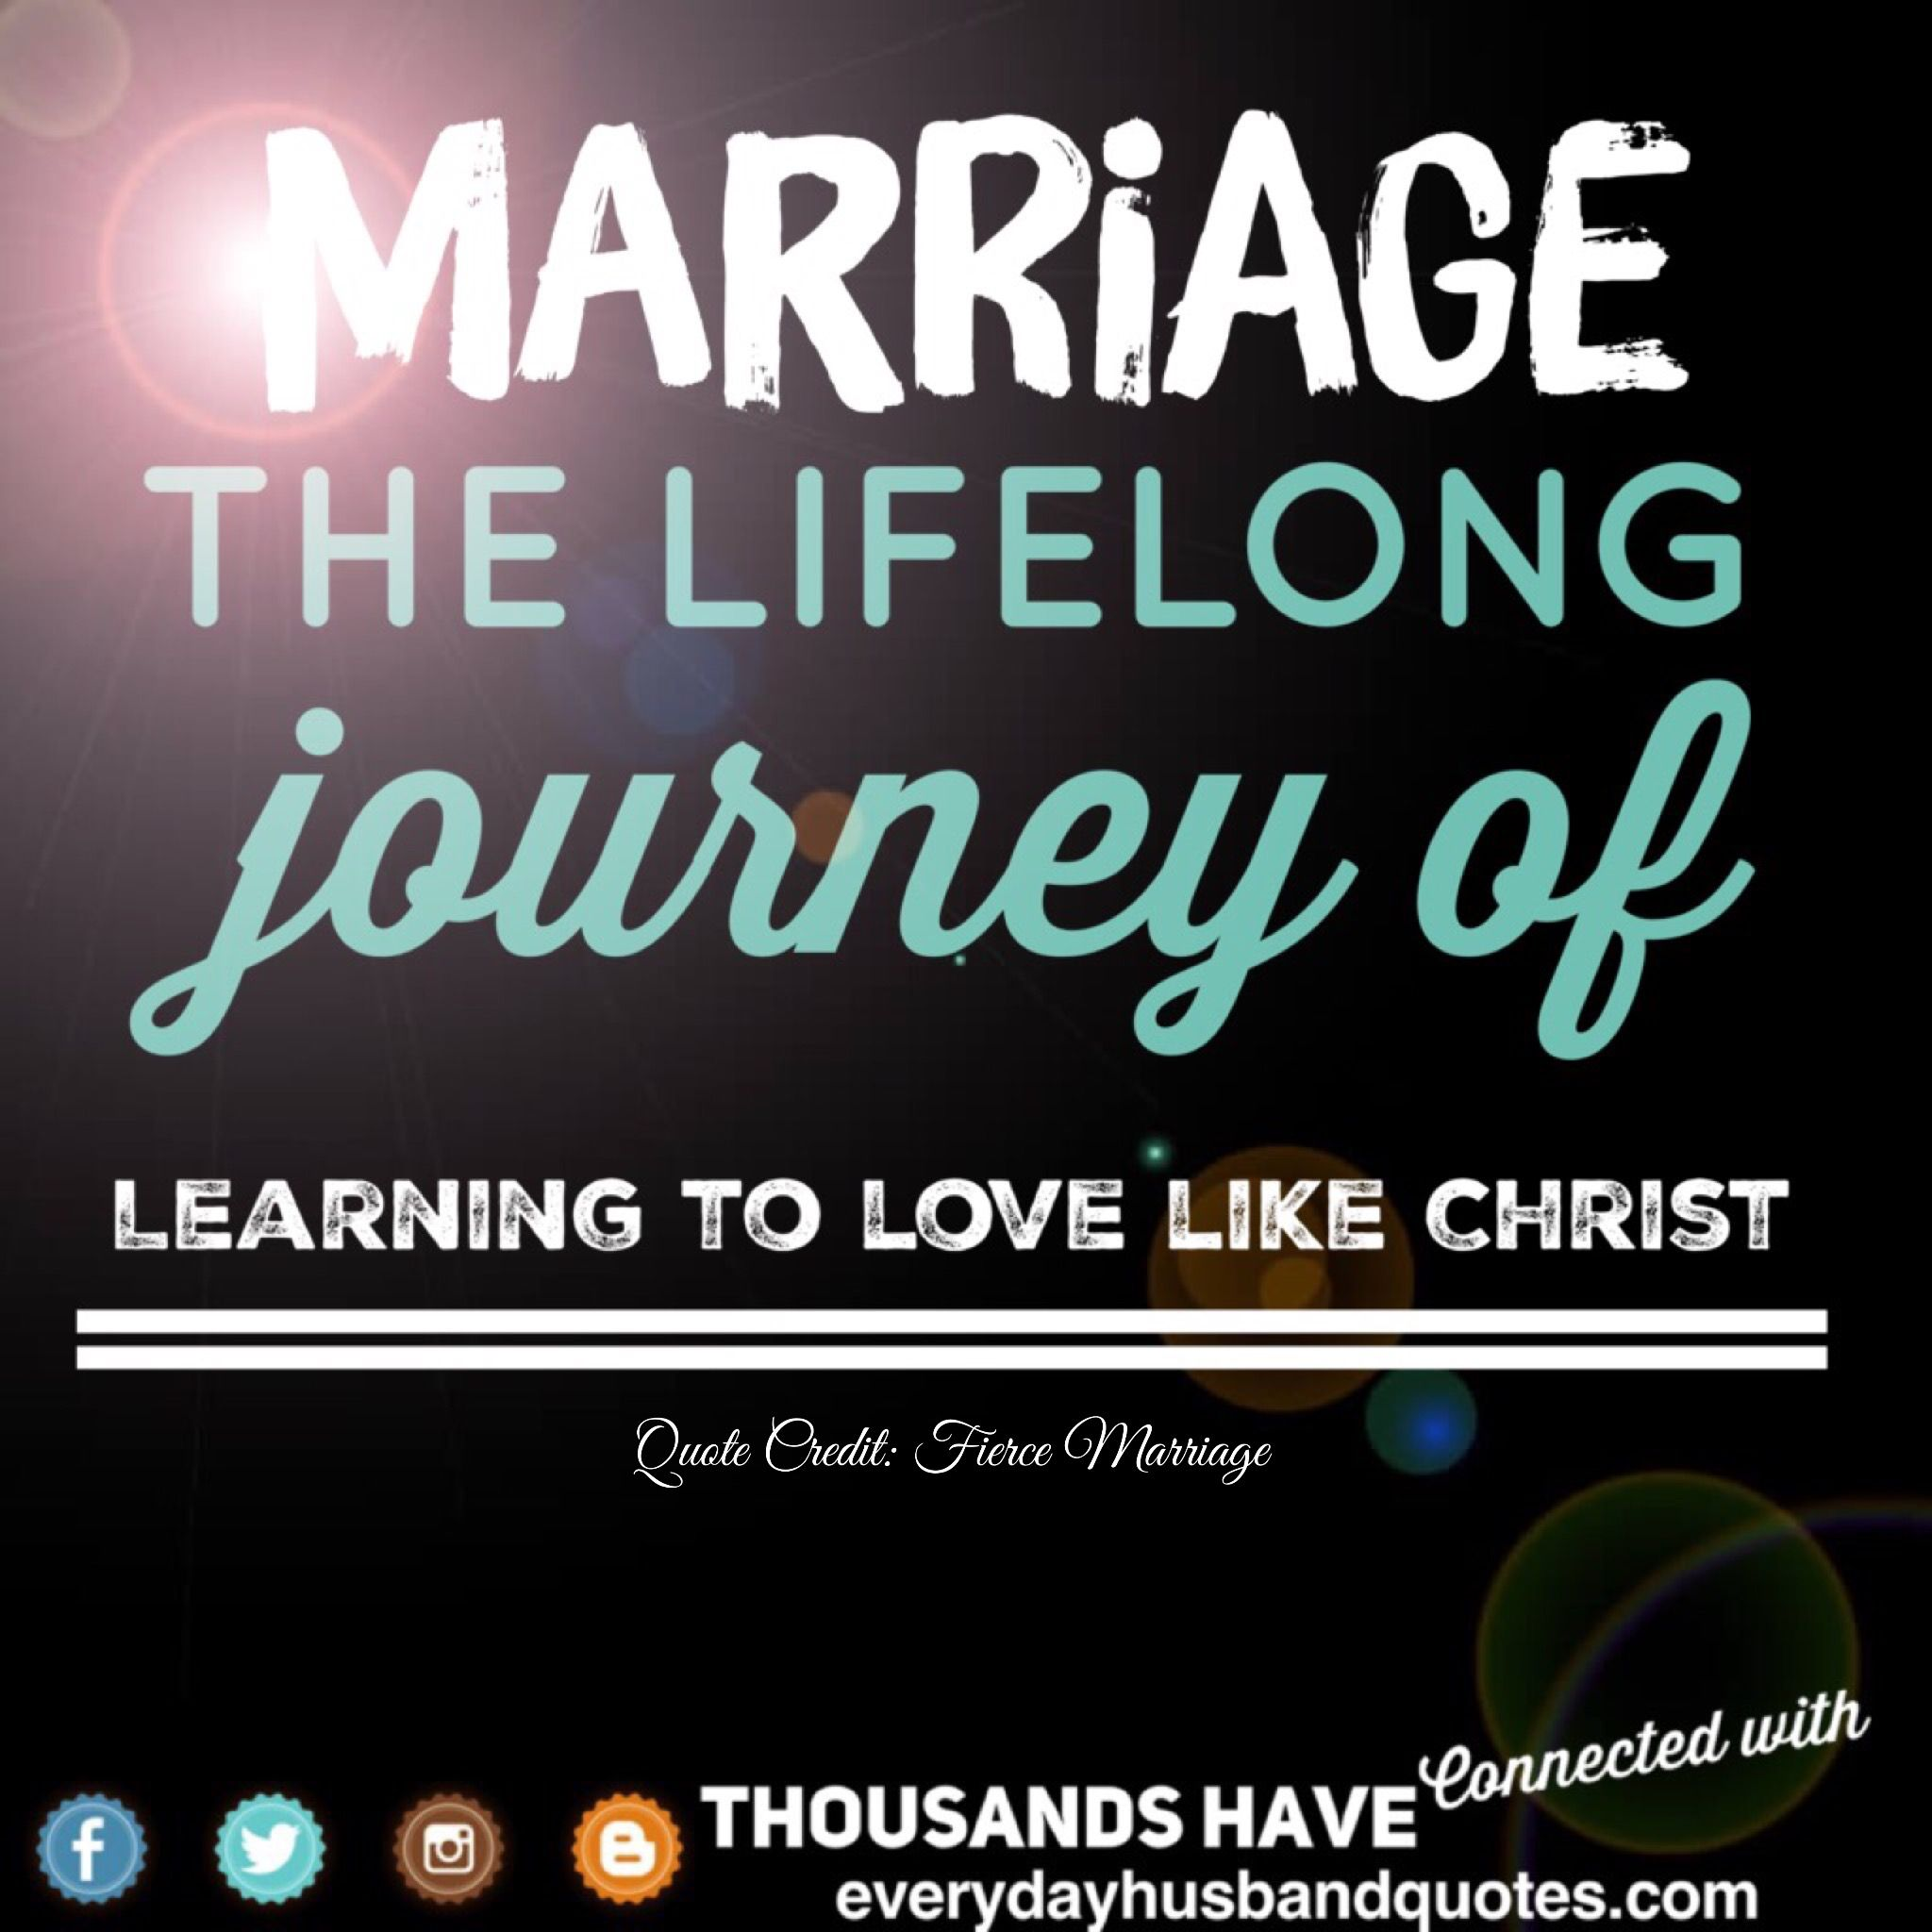 Husband Quote Love Like Christ Marriage the lifelong journey of learning to love like Christ